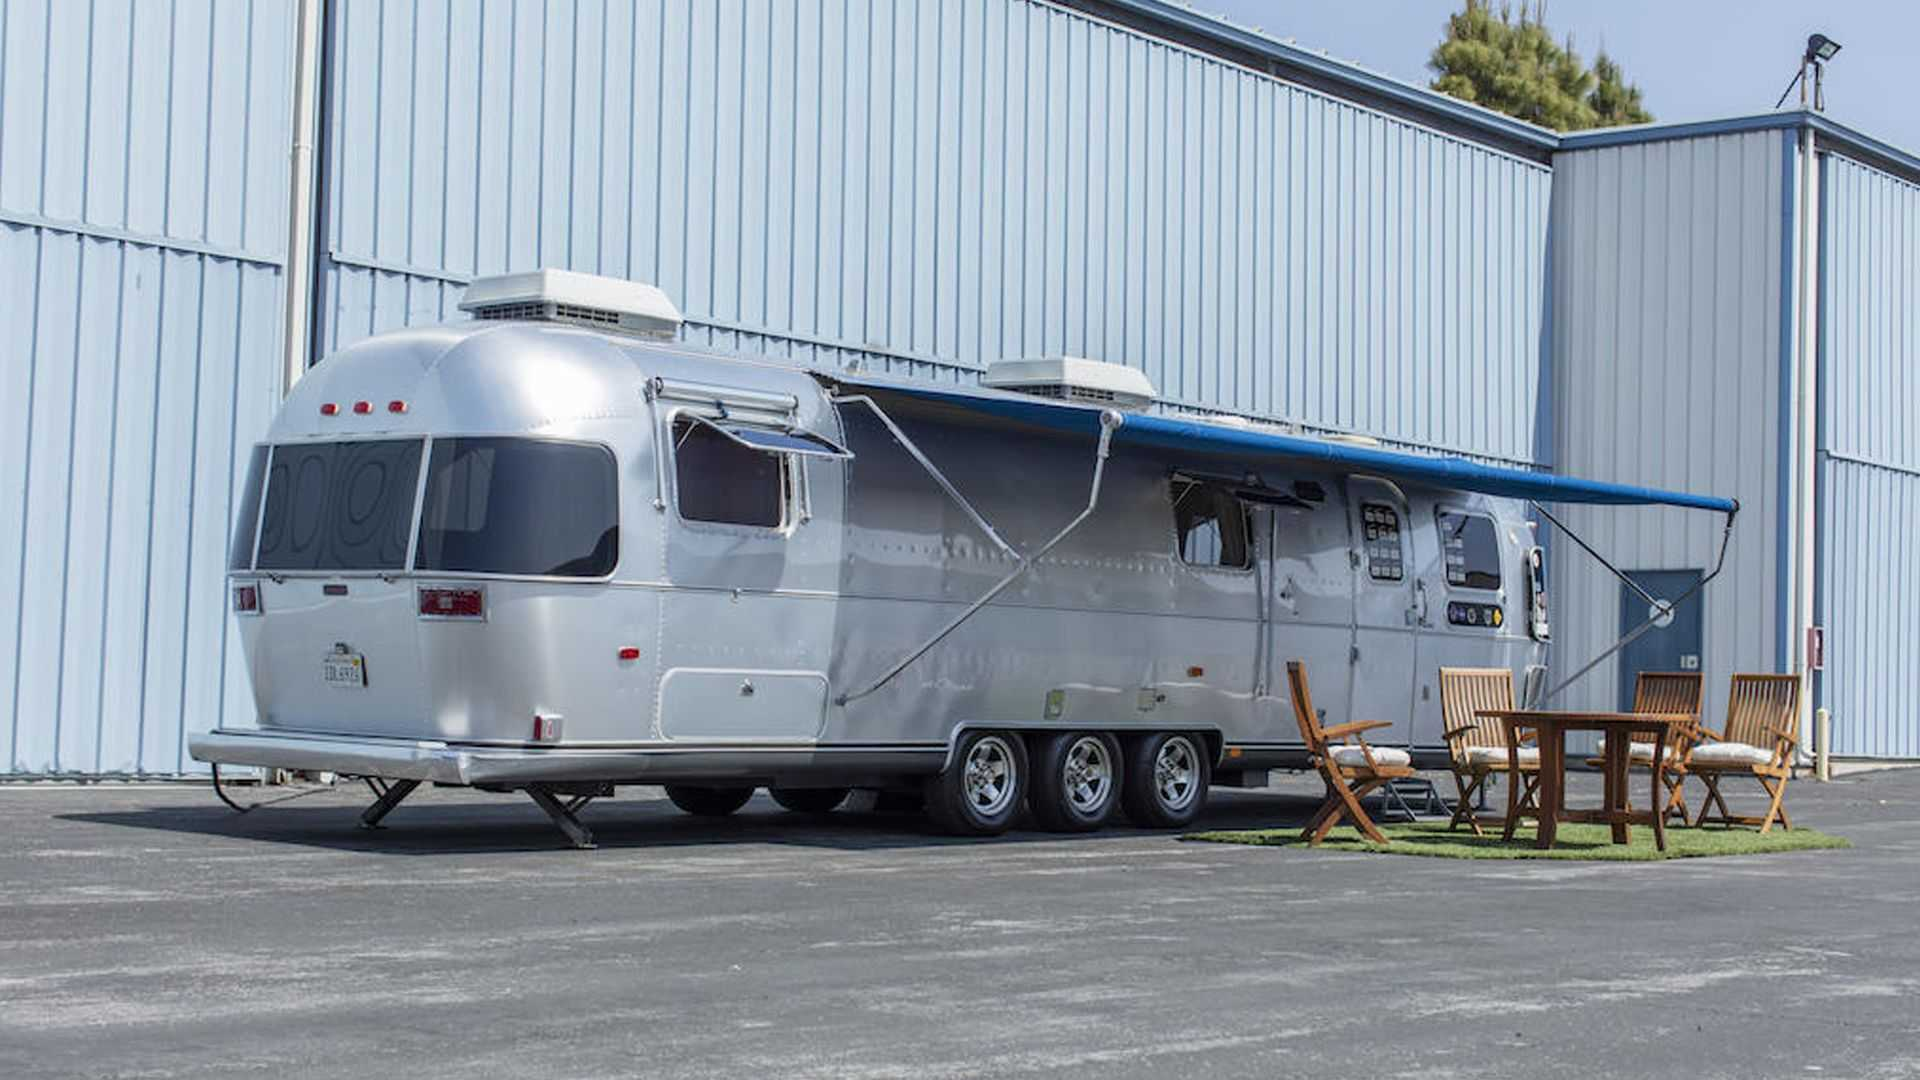 The Hollywood star had used his Airstream trailer for many years, including on filming sets. Now, the motorhome is heading to Bonhams and is expected to attract bids in the $150,000 – $250,000 range on August 13, 2021.